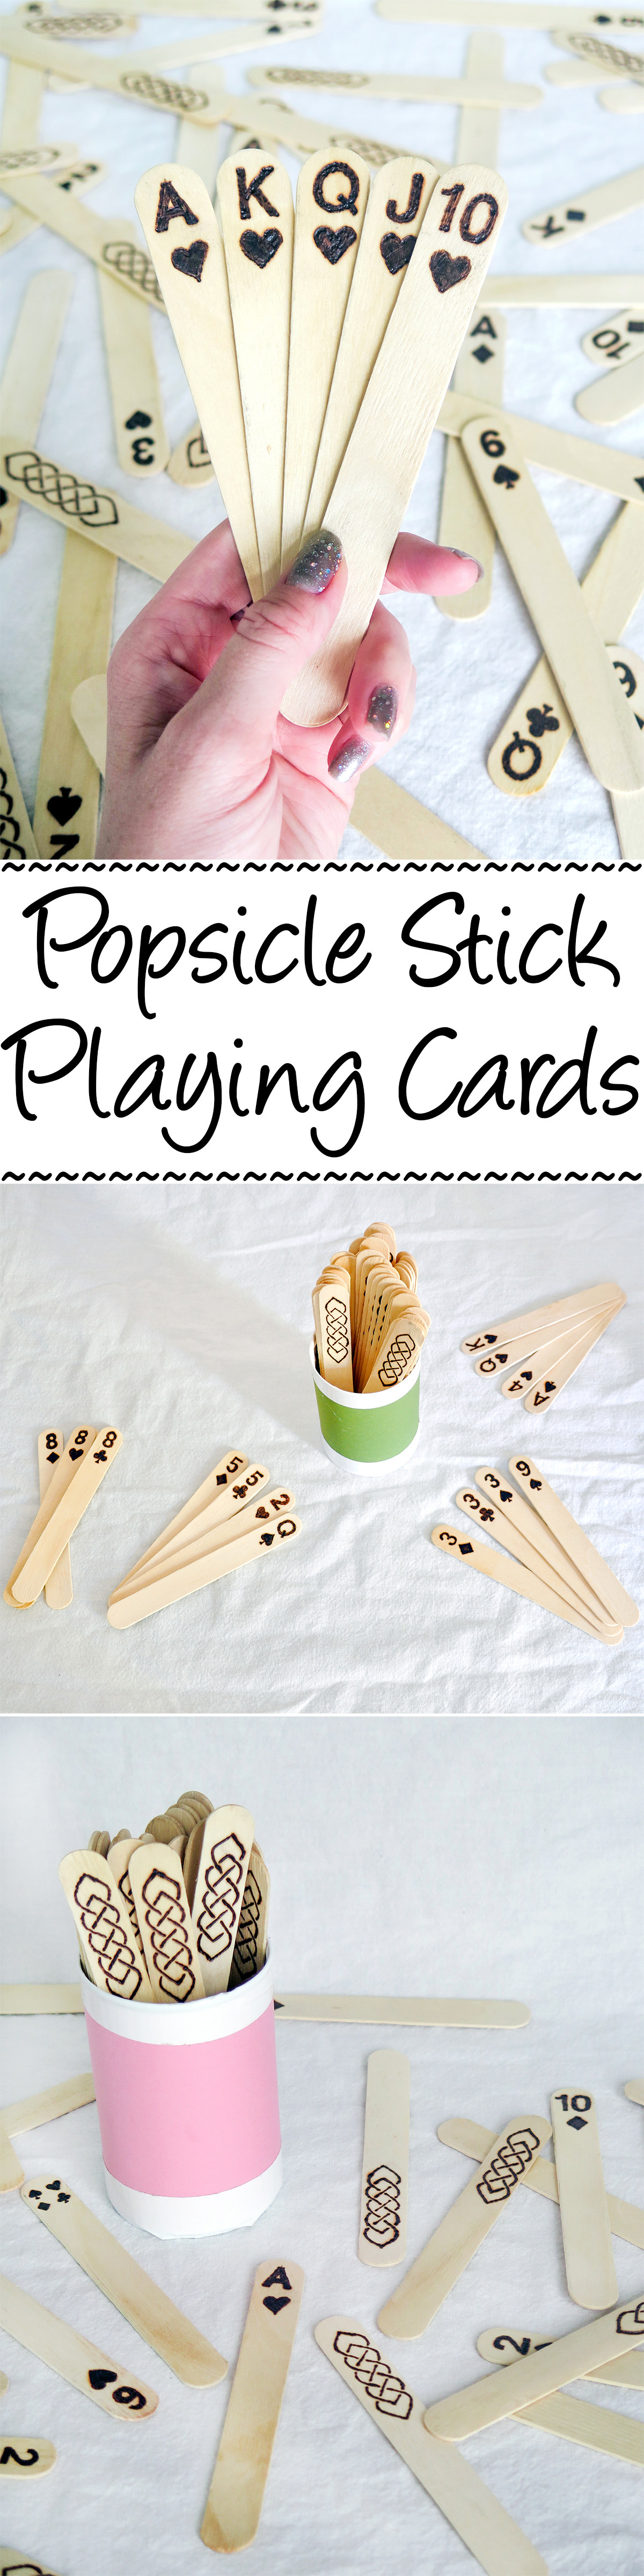 Christmas homemade gift ideas made from popsicle sticks